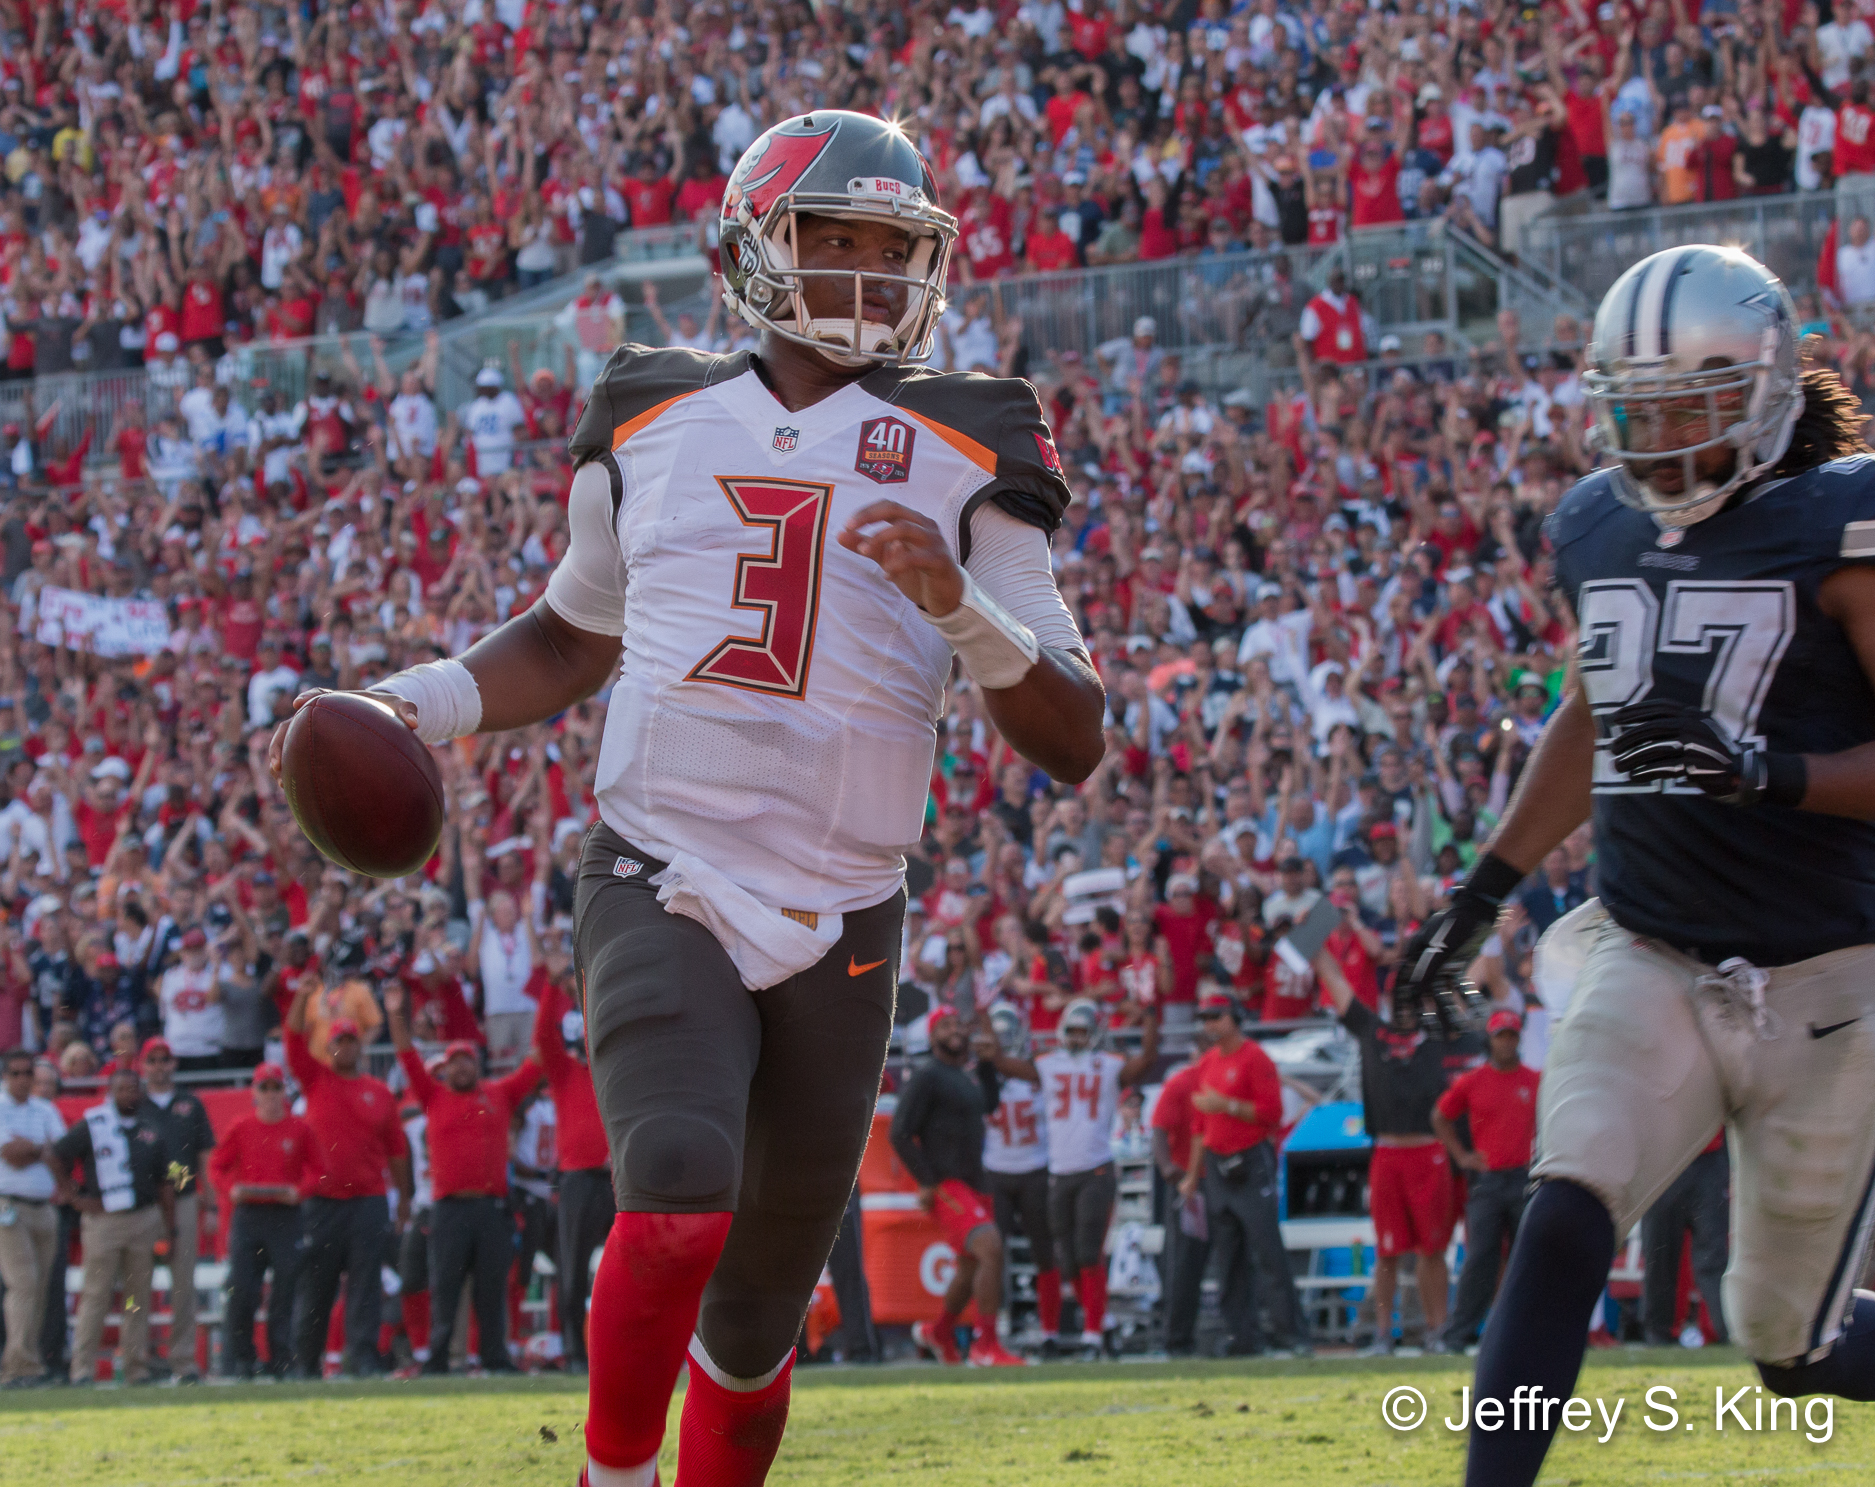 The Bucs eagerly await to see improvement from Winston.